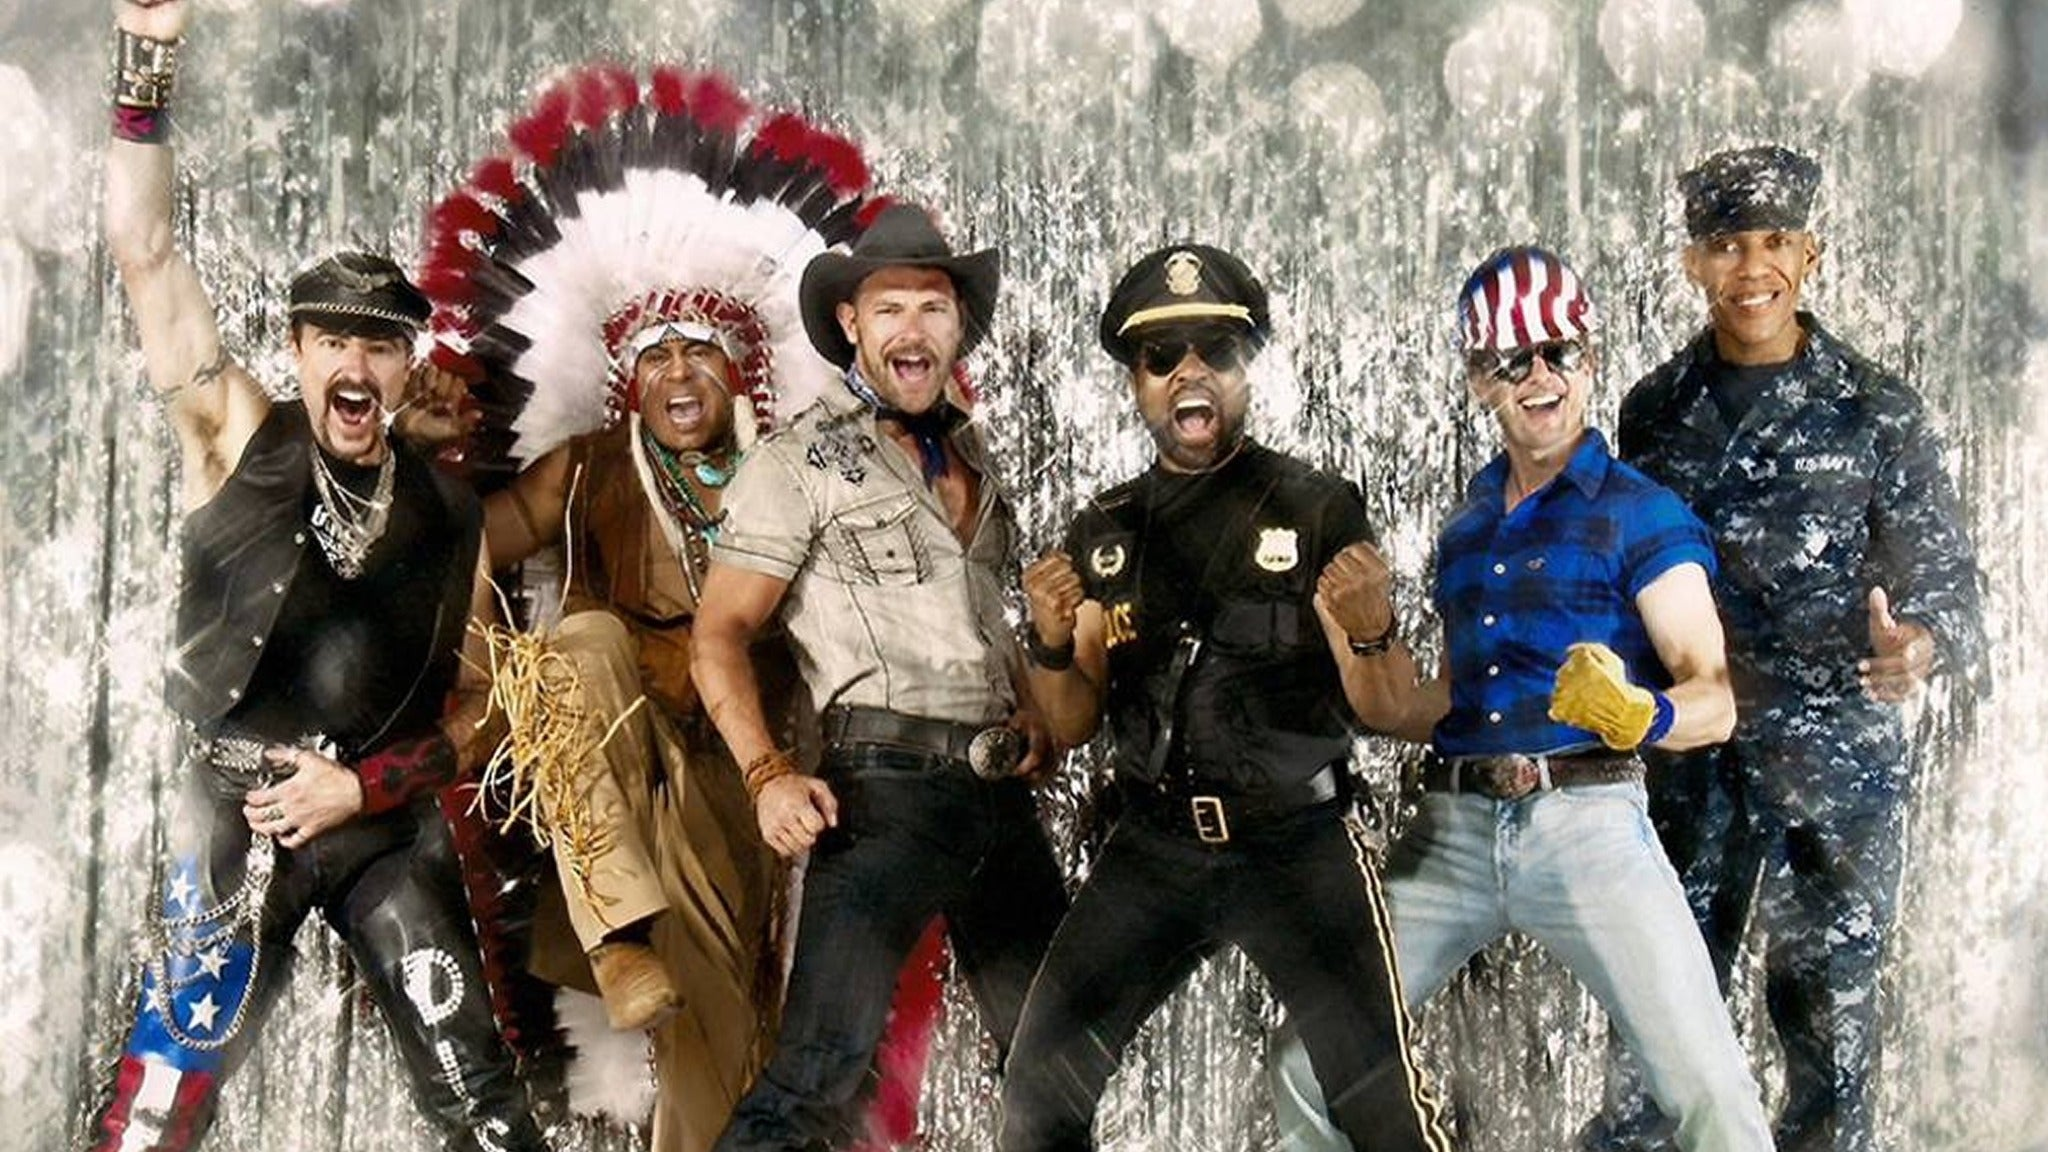 The Kings of Disco Former Members of Village People